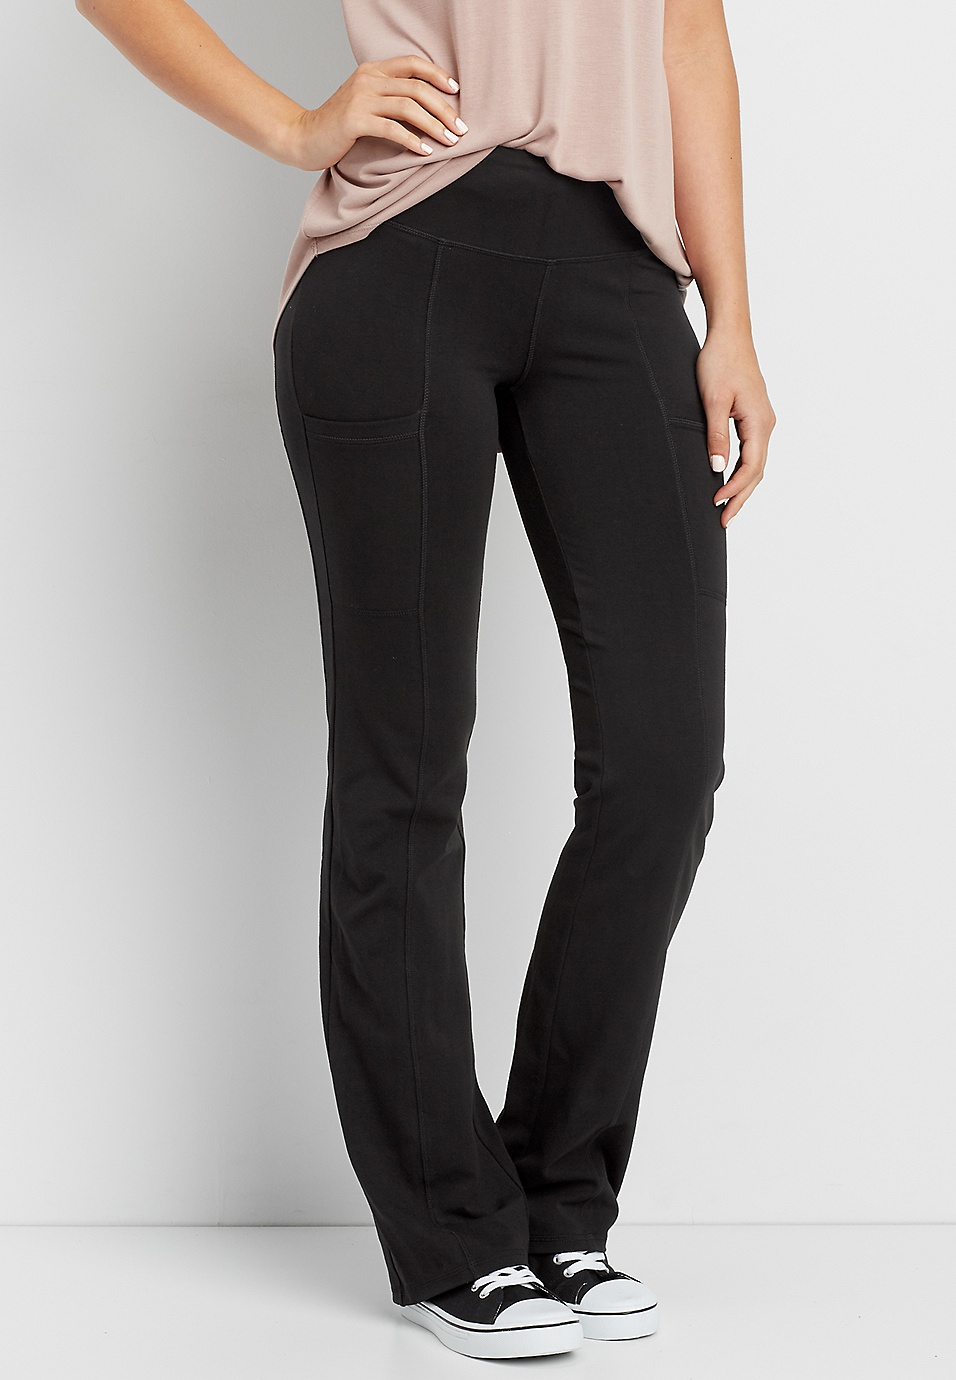 3d30245e4a0 bootcut yoga pant with side pockets